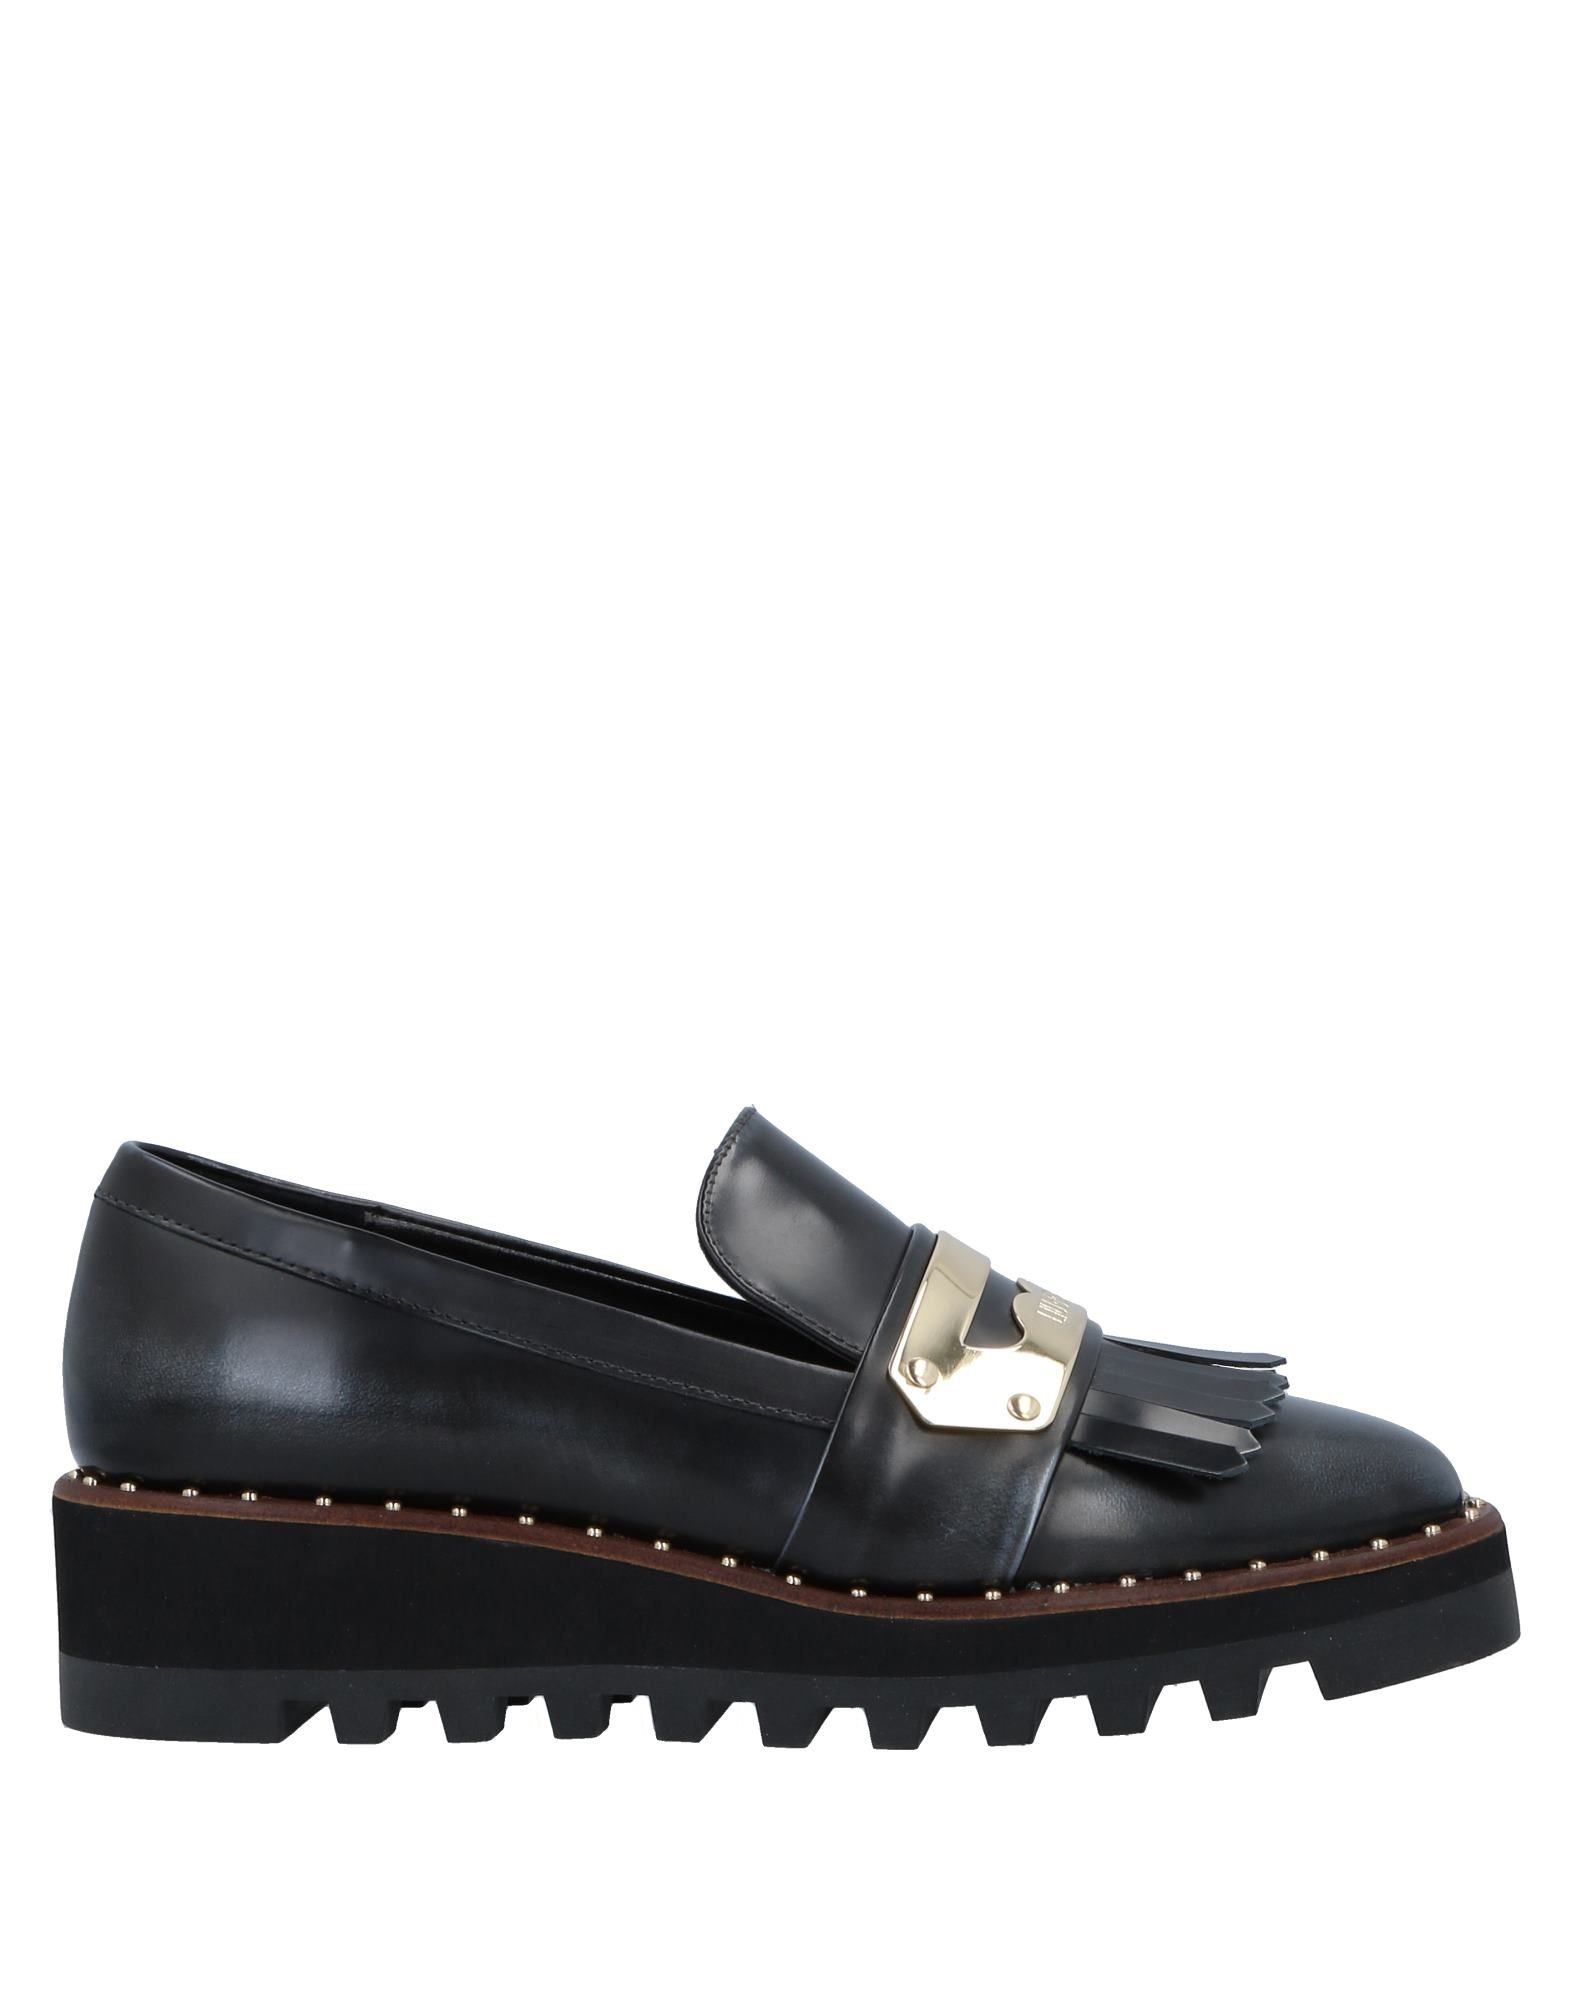 Liu •Jo Loafers - Women Liu •Jo Loafers online on 11514758DJ  United Kingdom - 11514758DJ on 4e59c1